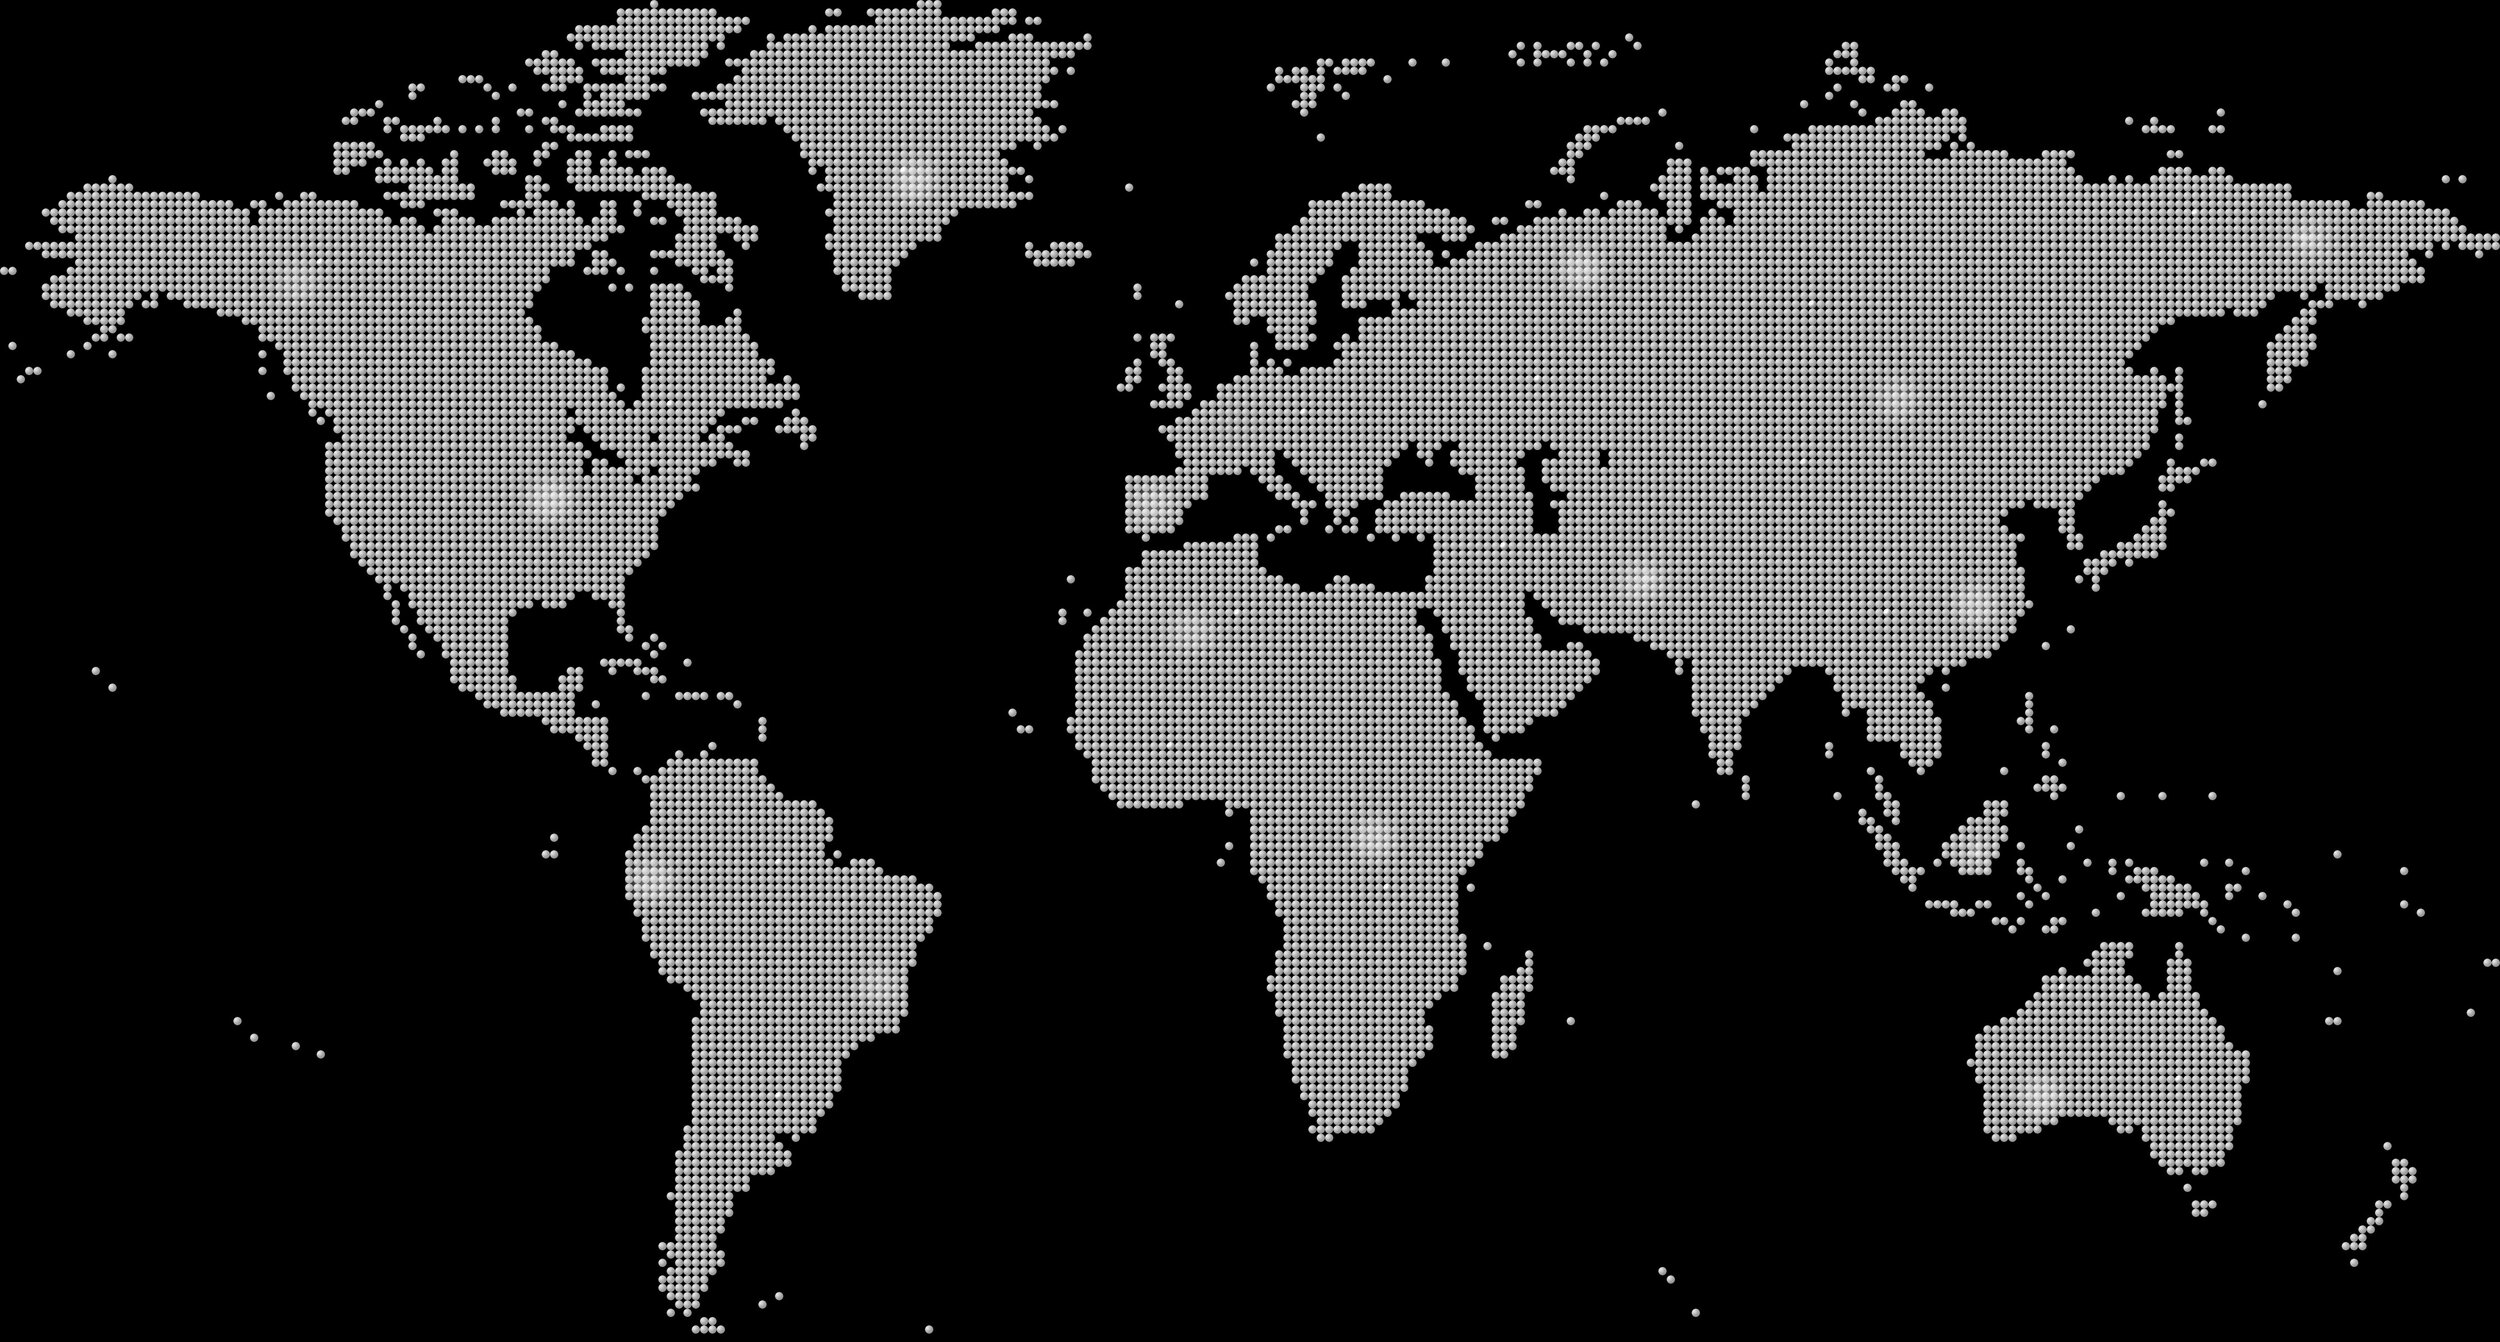 map-of-the-world-4799734.jpg